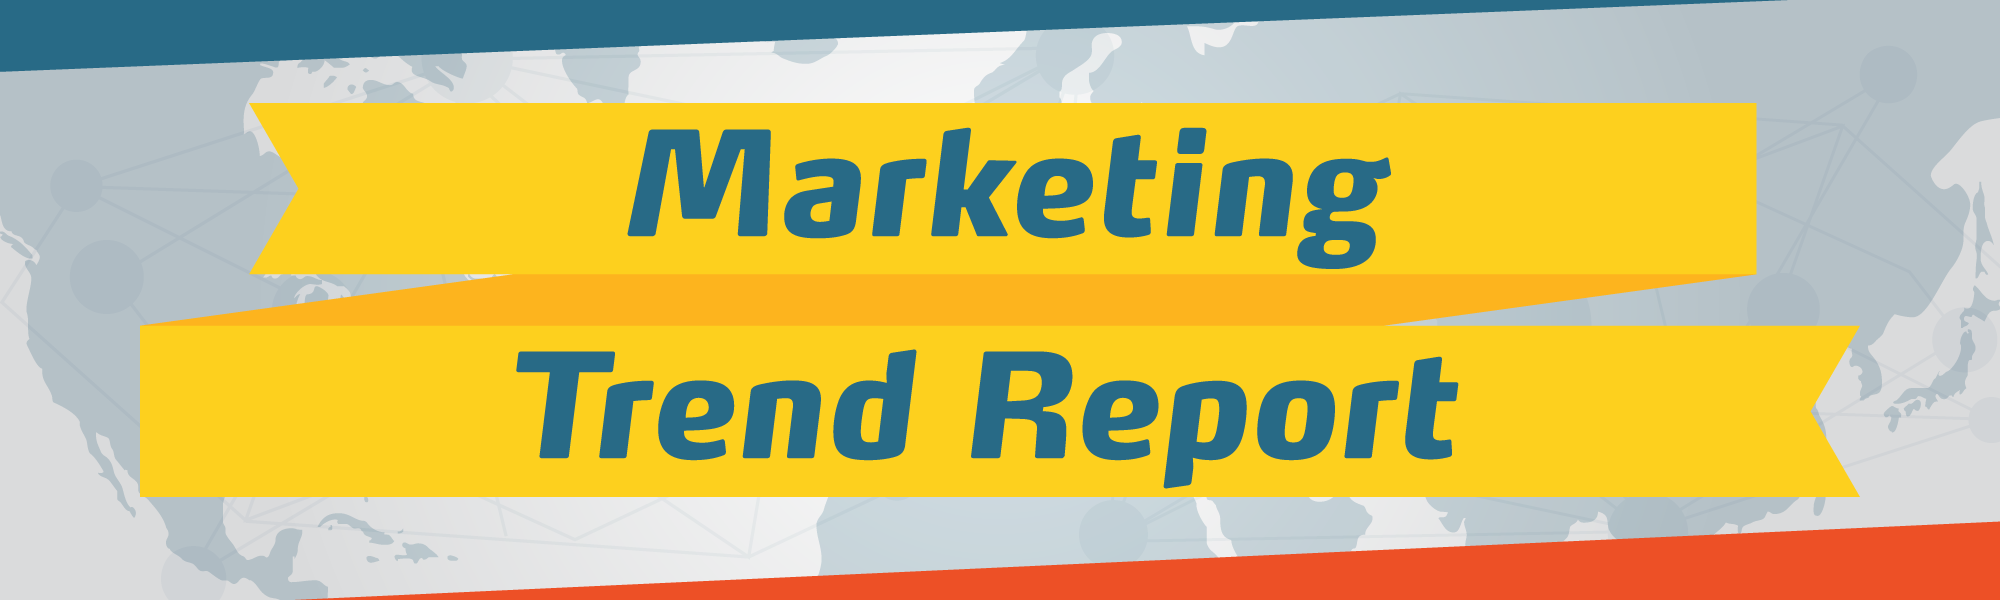 Marketing Trend Report